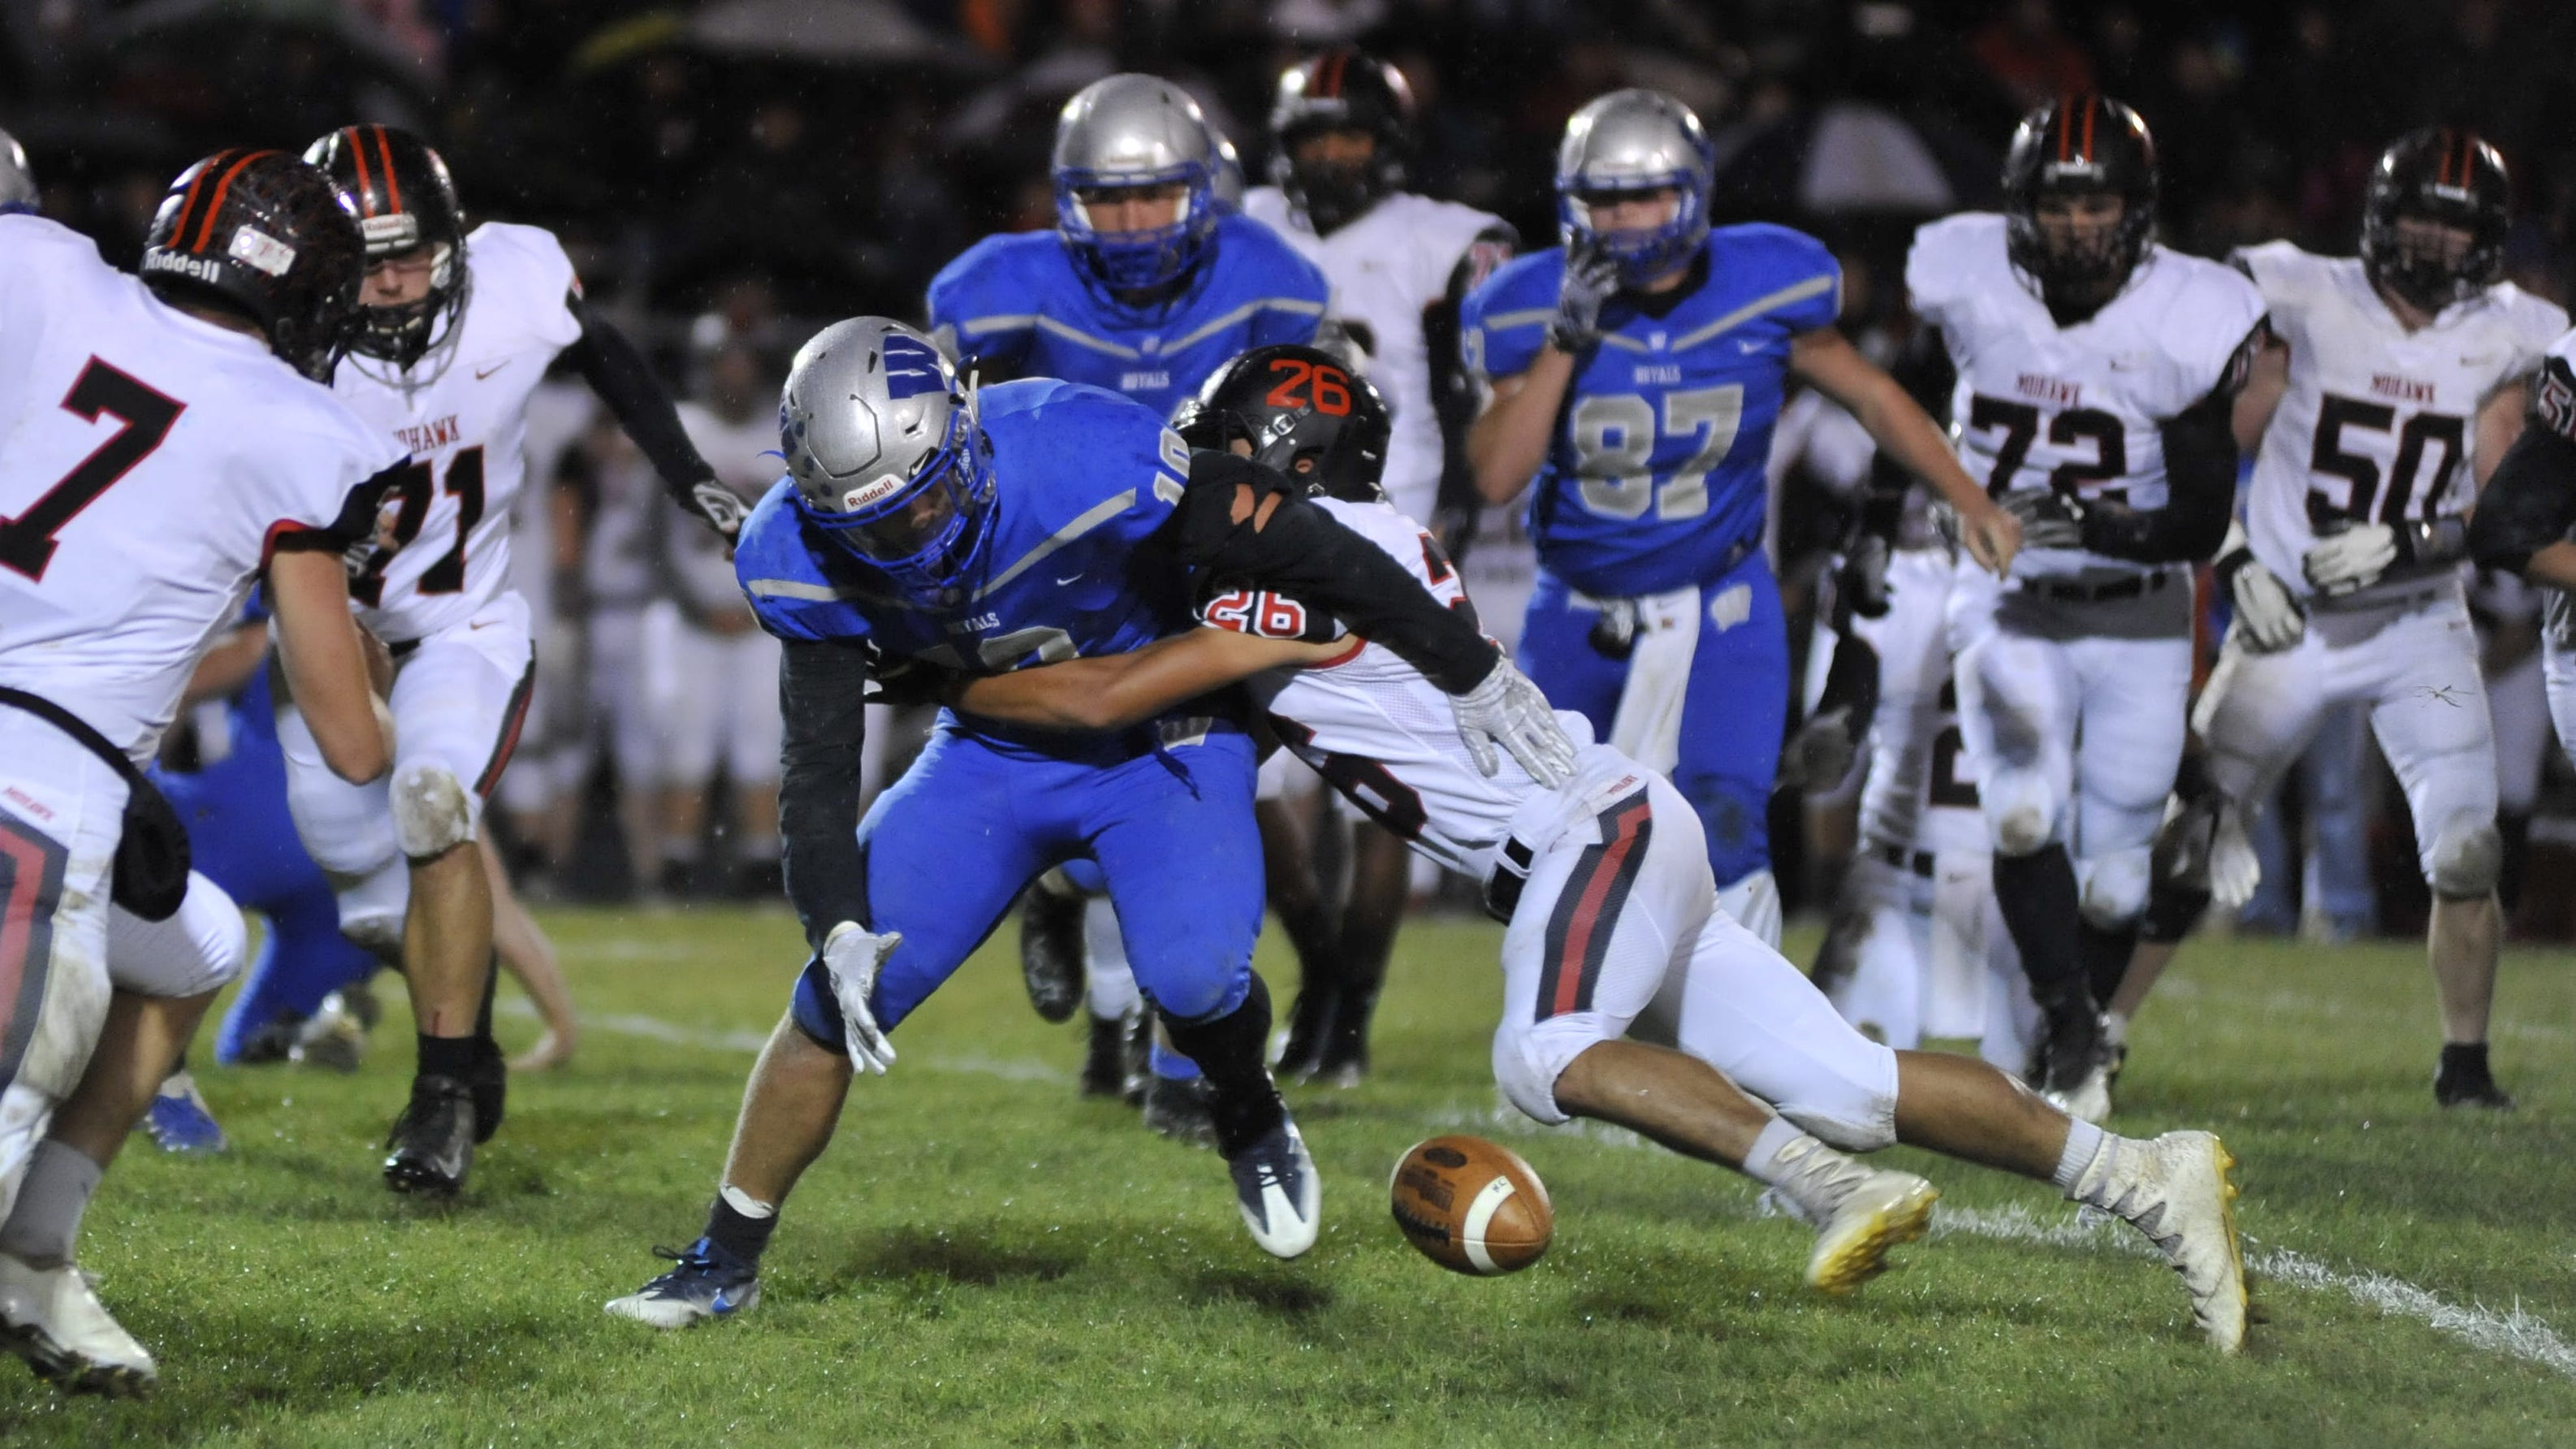 Warriors throttle Royals to remain undefeated